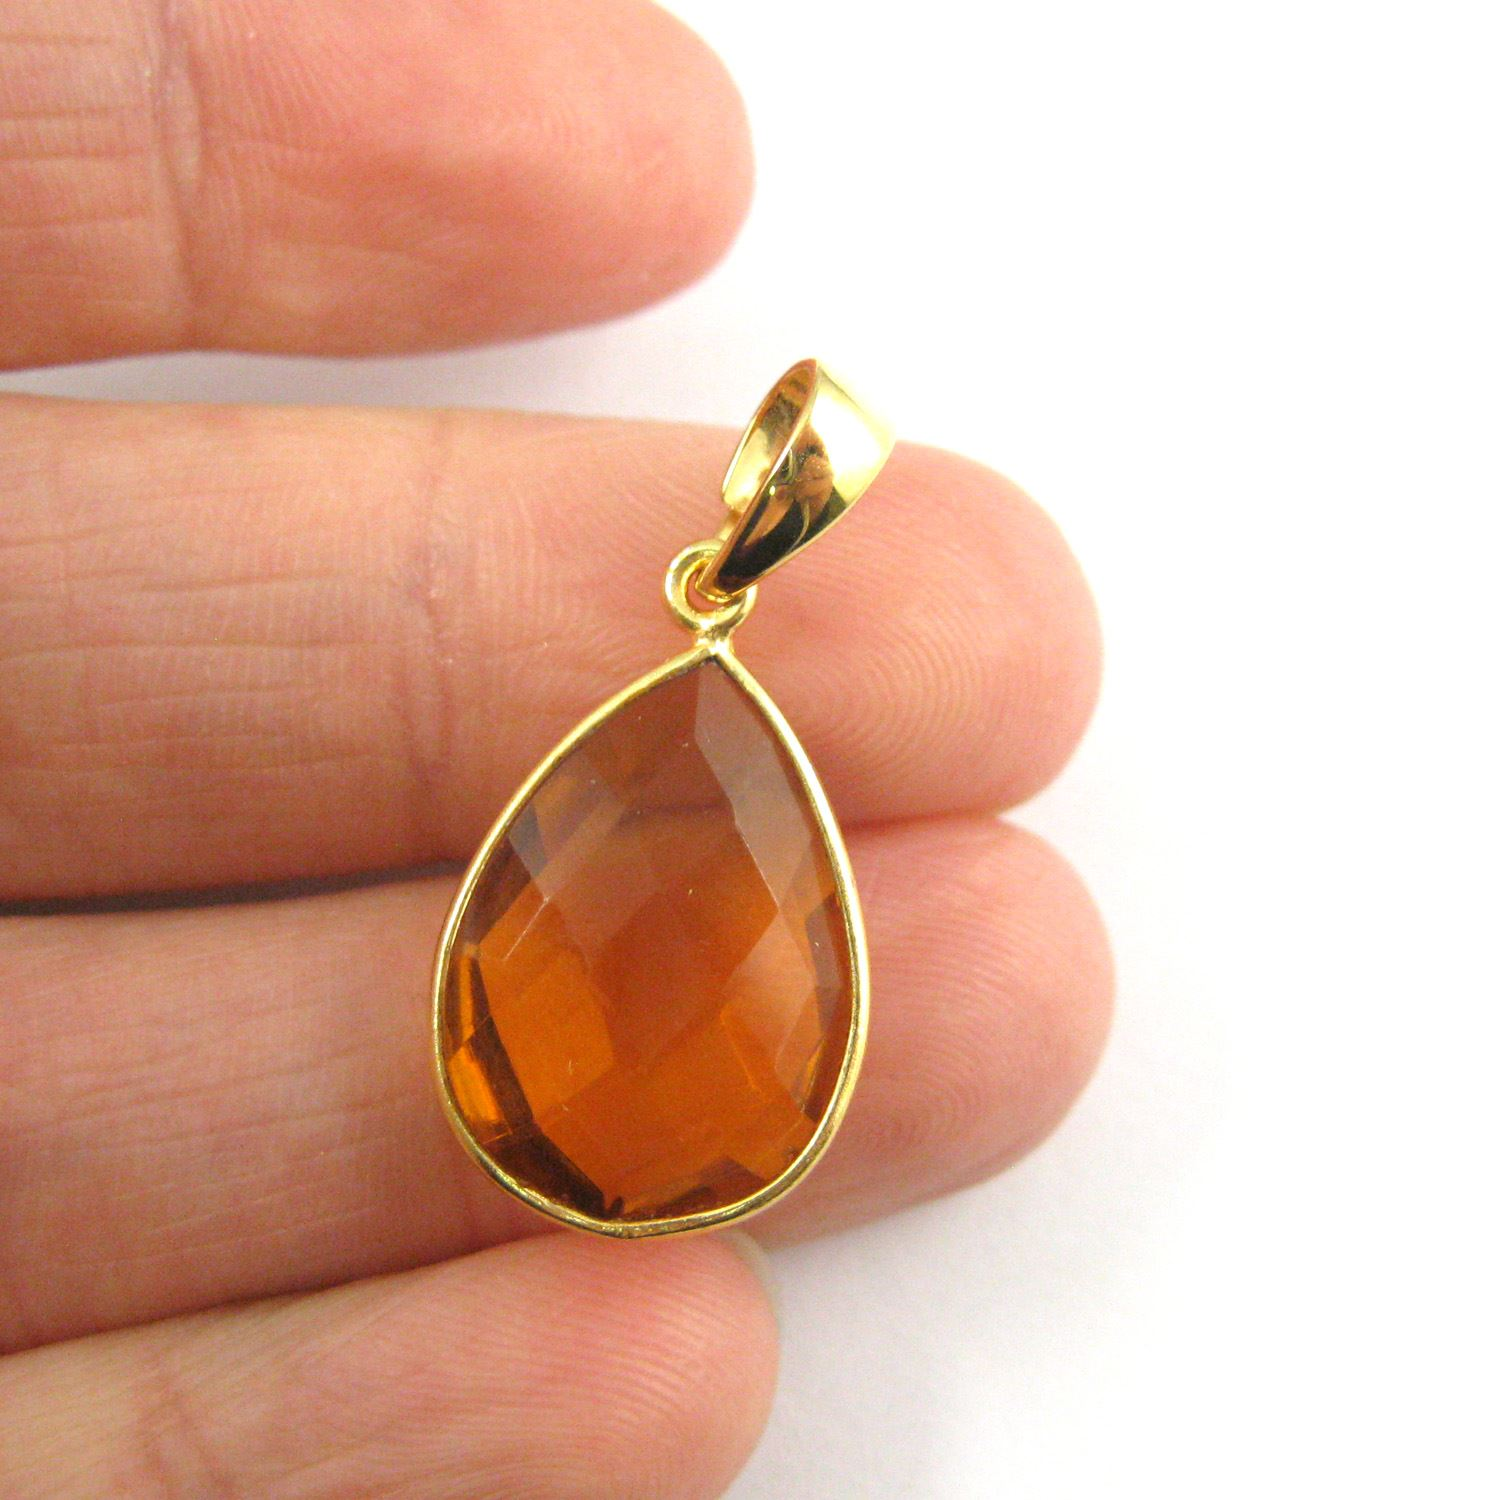 Bezel Gemstone Pendant with Bail -Gold plated Sterling Silver Teardrop Gem Pendant - Ready for Necklace - 29mm - Citrine Quartz